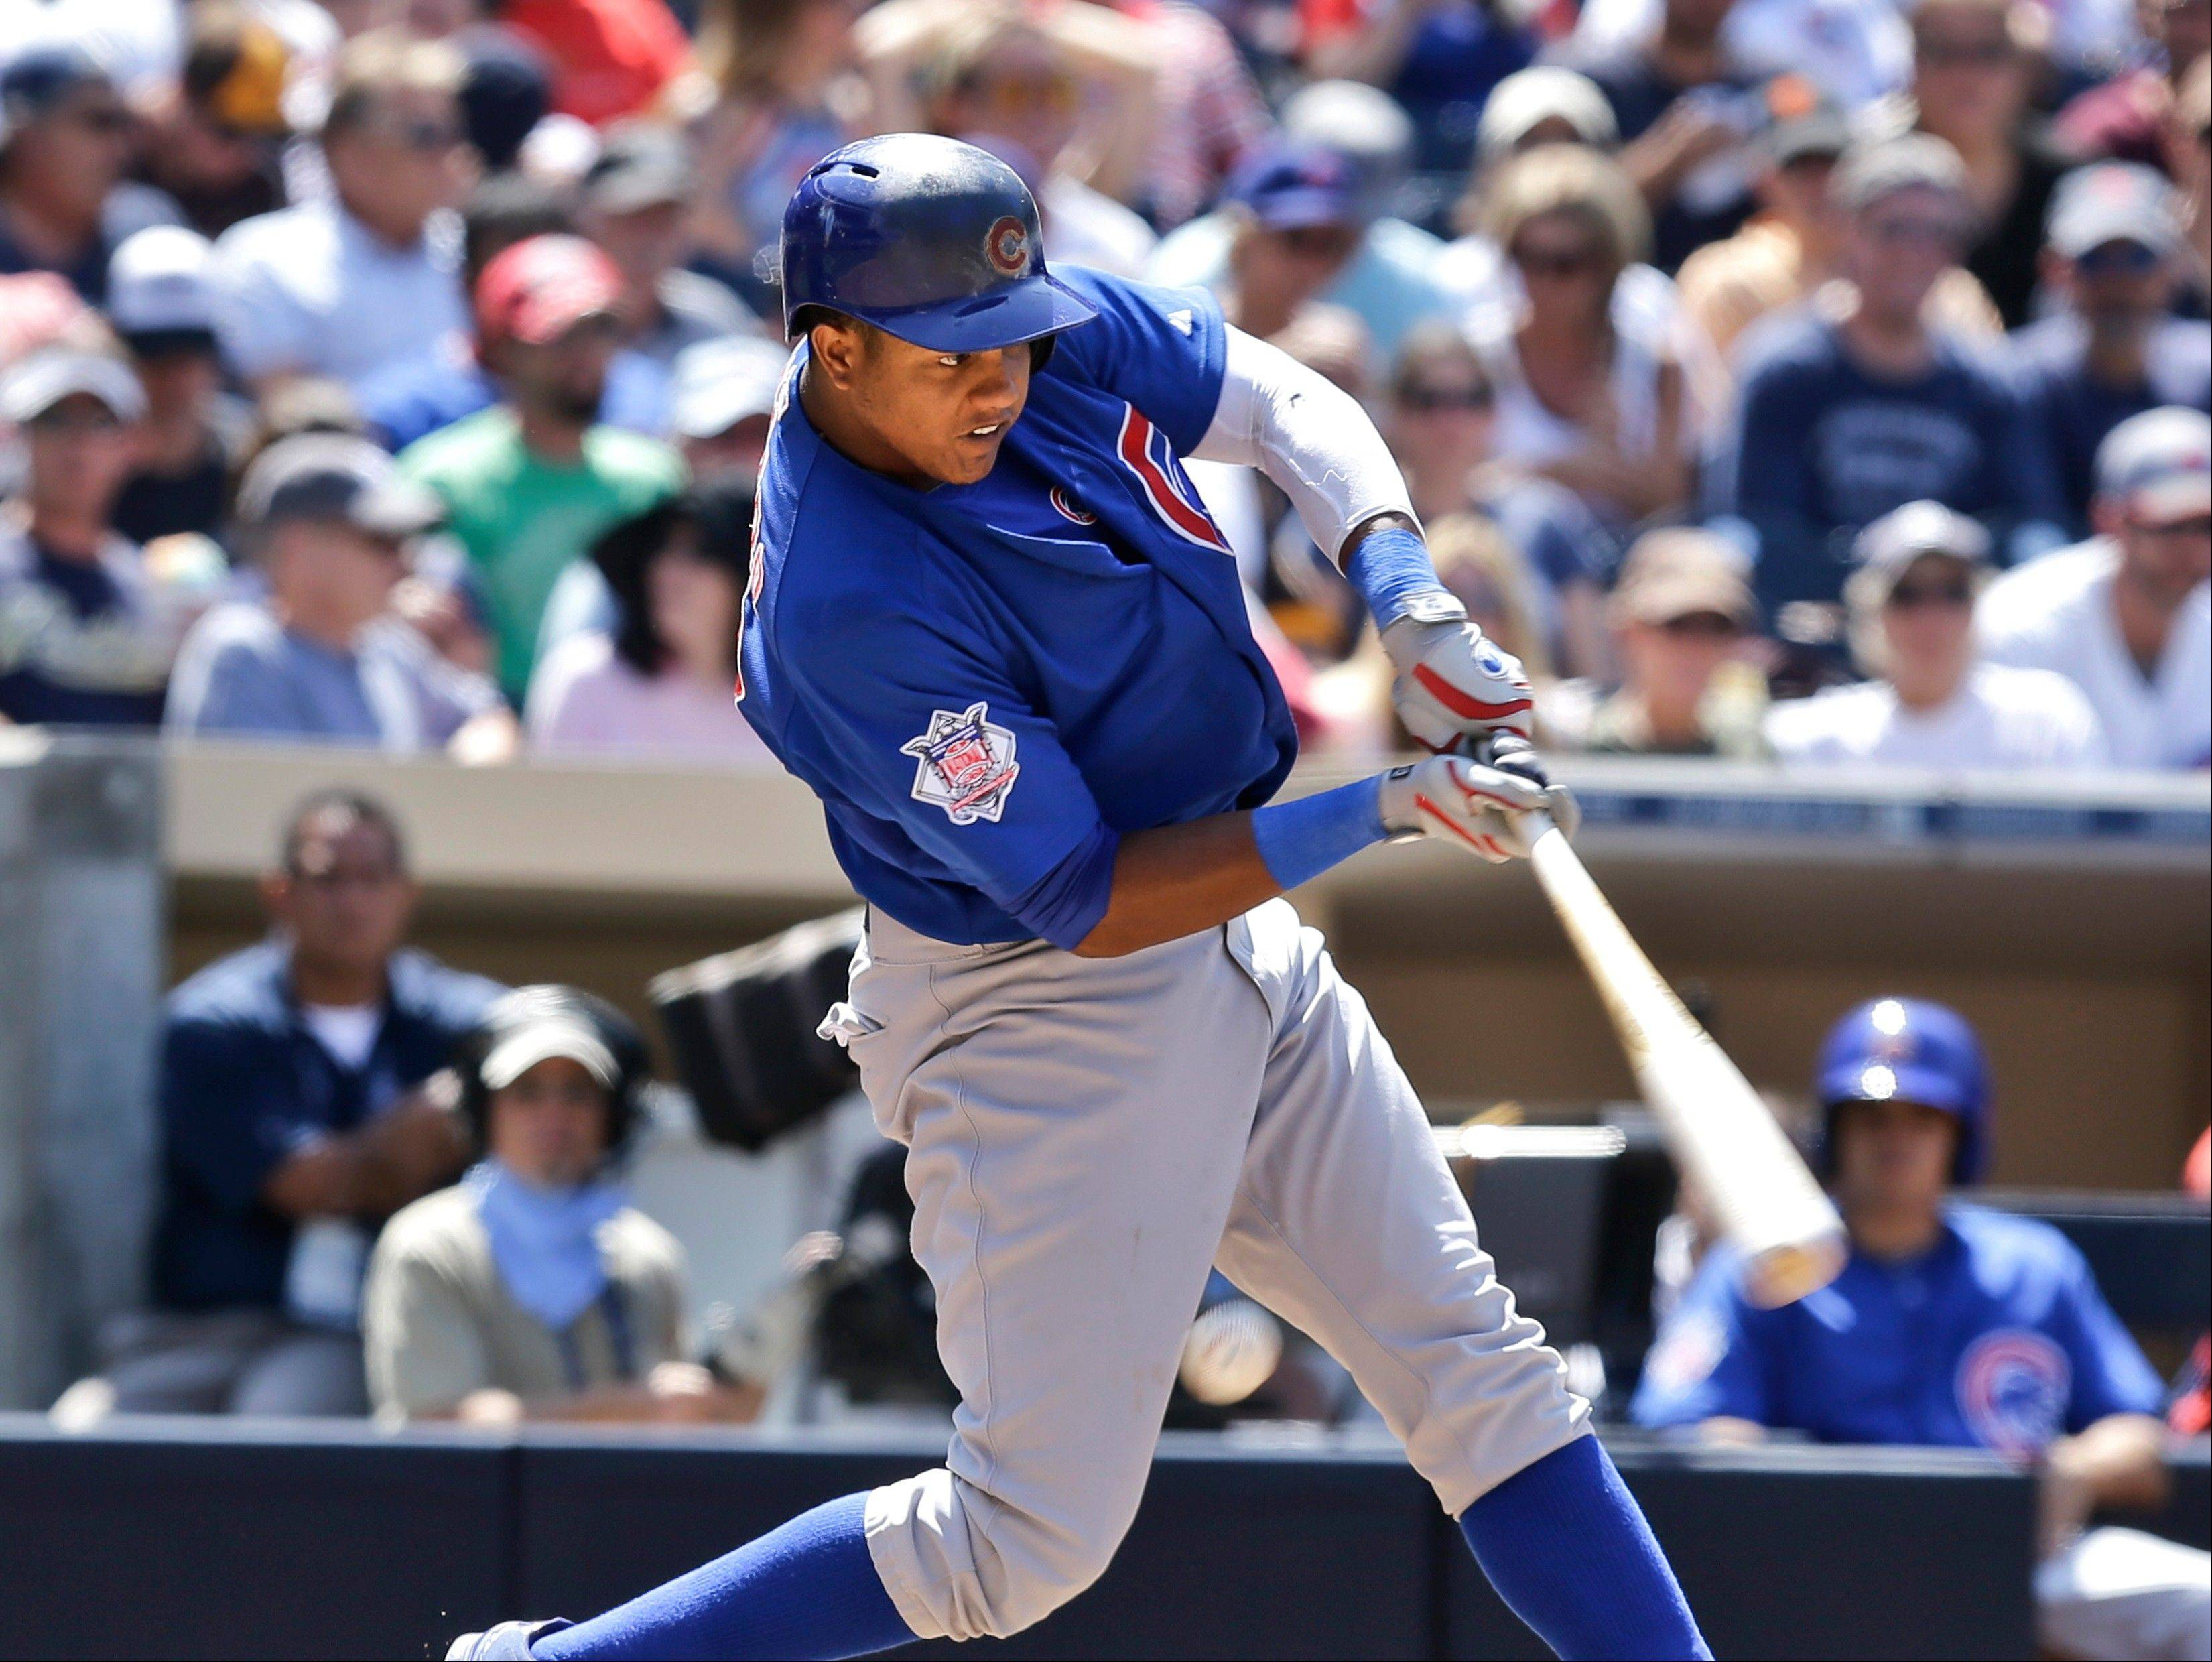 Cubs shortstop Starlin Castro is 20-for-101 with no homers and 2 RBI in August.